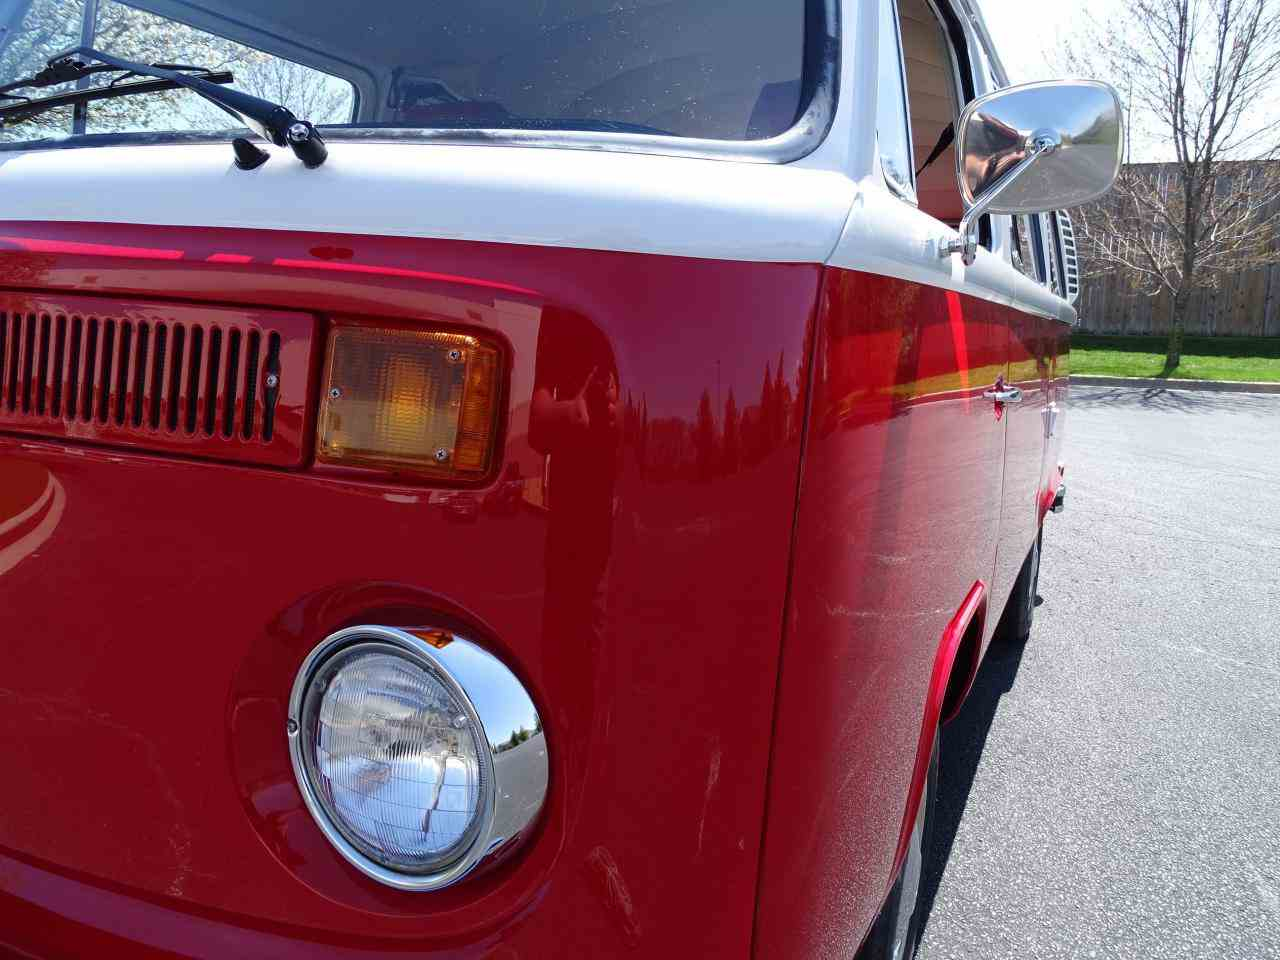 Large Picture of 1974 Volkswagen Westfalia Camper located in Illinois - $34,995.00 Offered by Gateway Classic Cars - St. Louis - NEEL